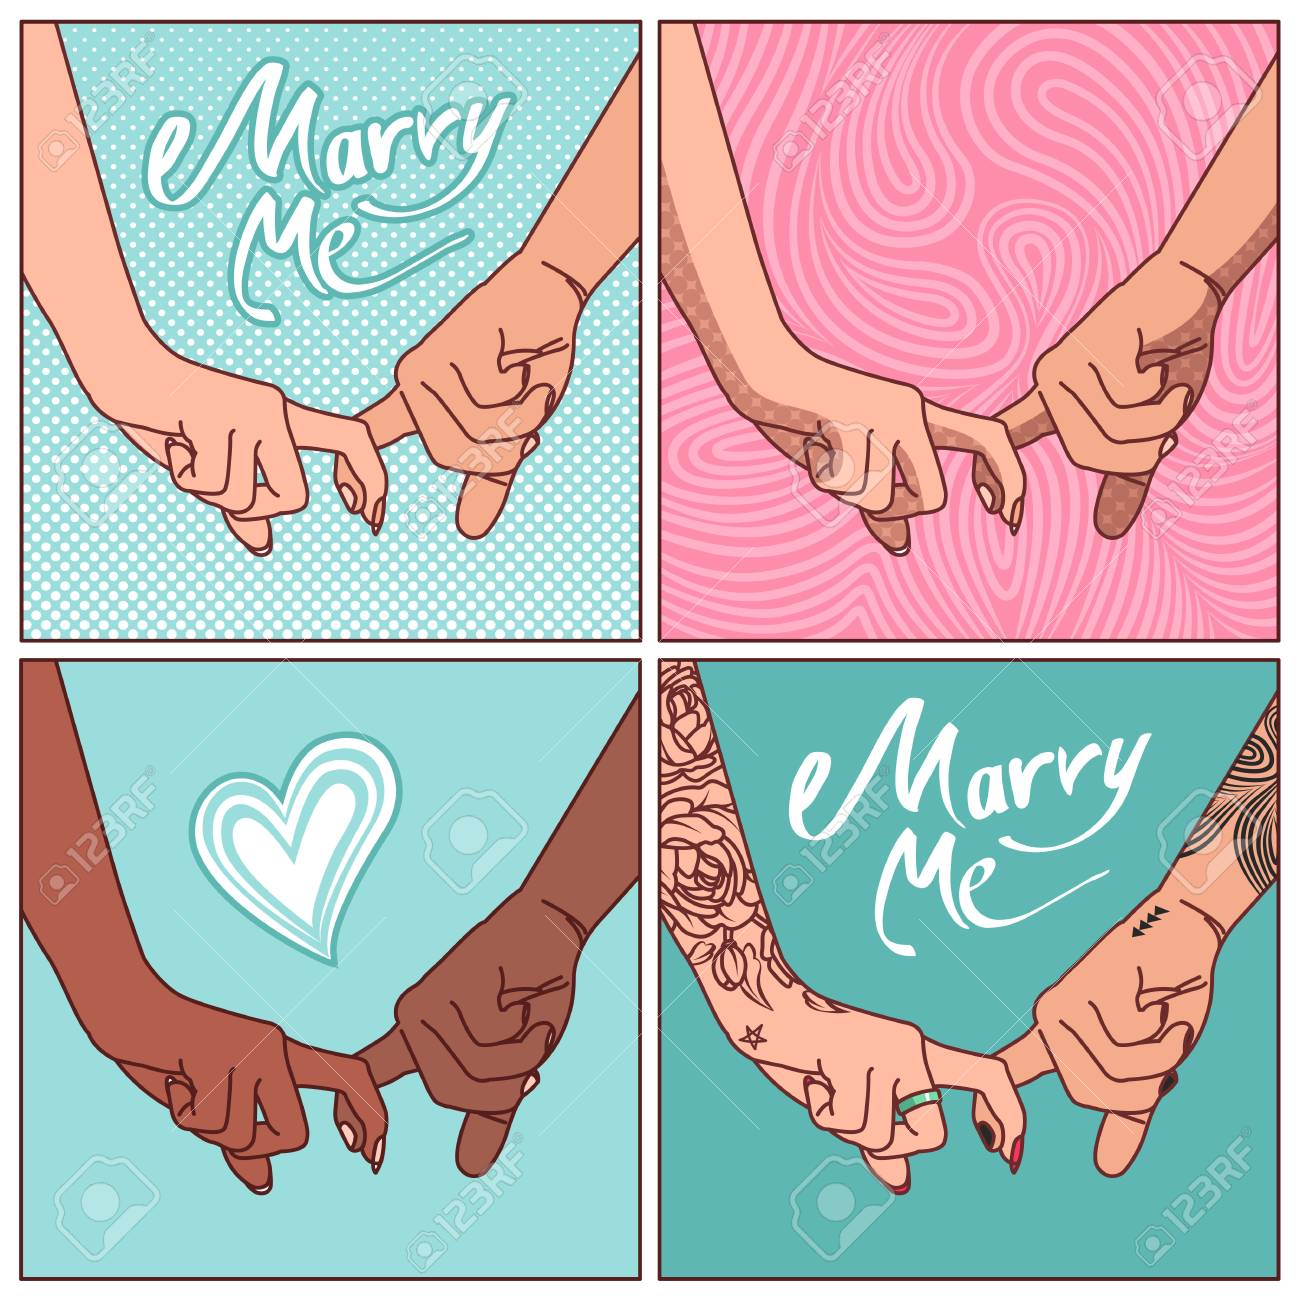 A Set Of Linked Hands With His Index Fingers Young Couples In Royalty Free Cliparts Vectors And Stock Illustration Image 101967297